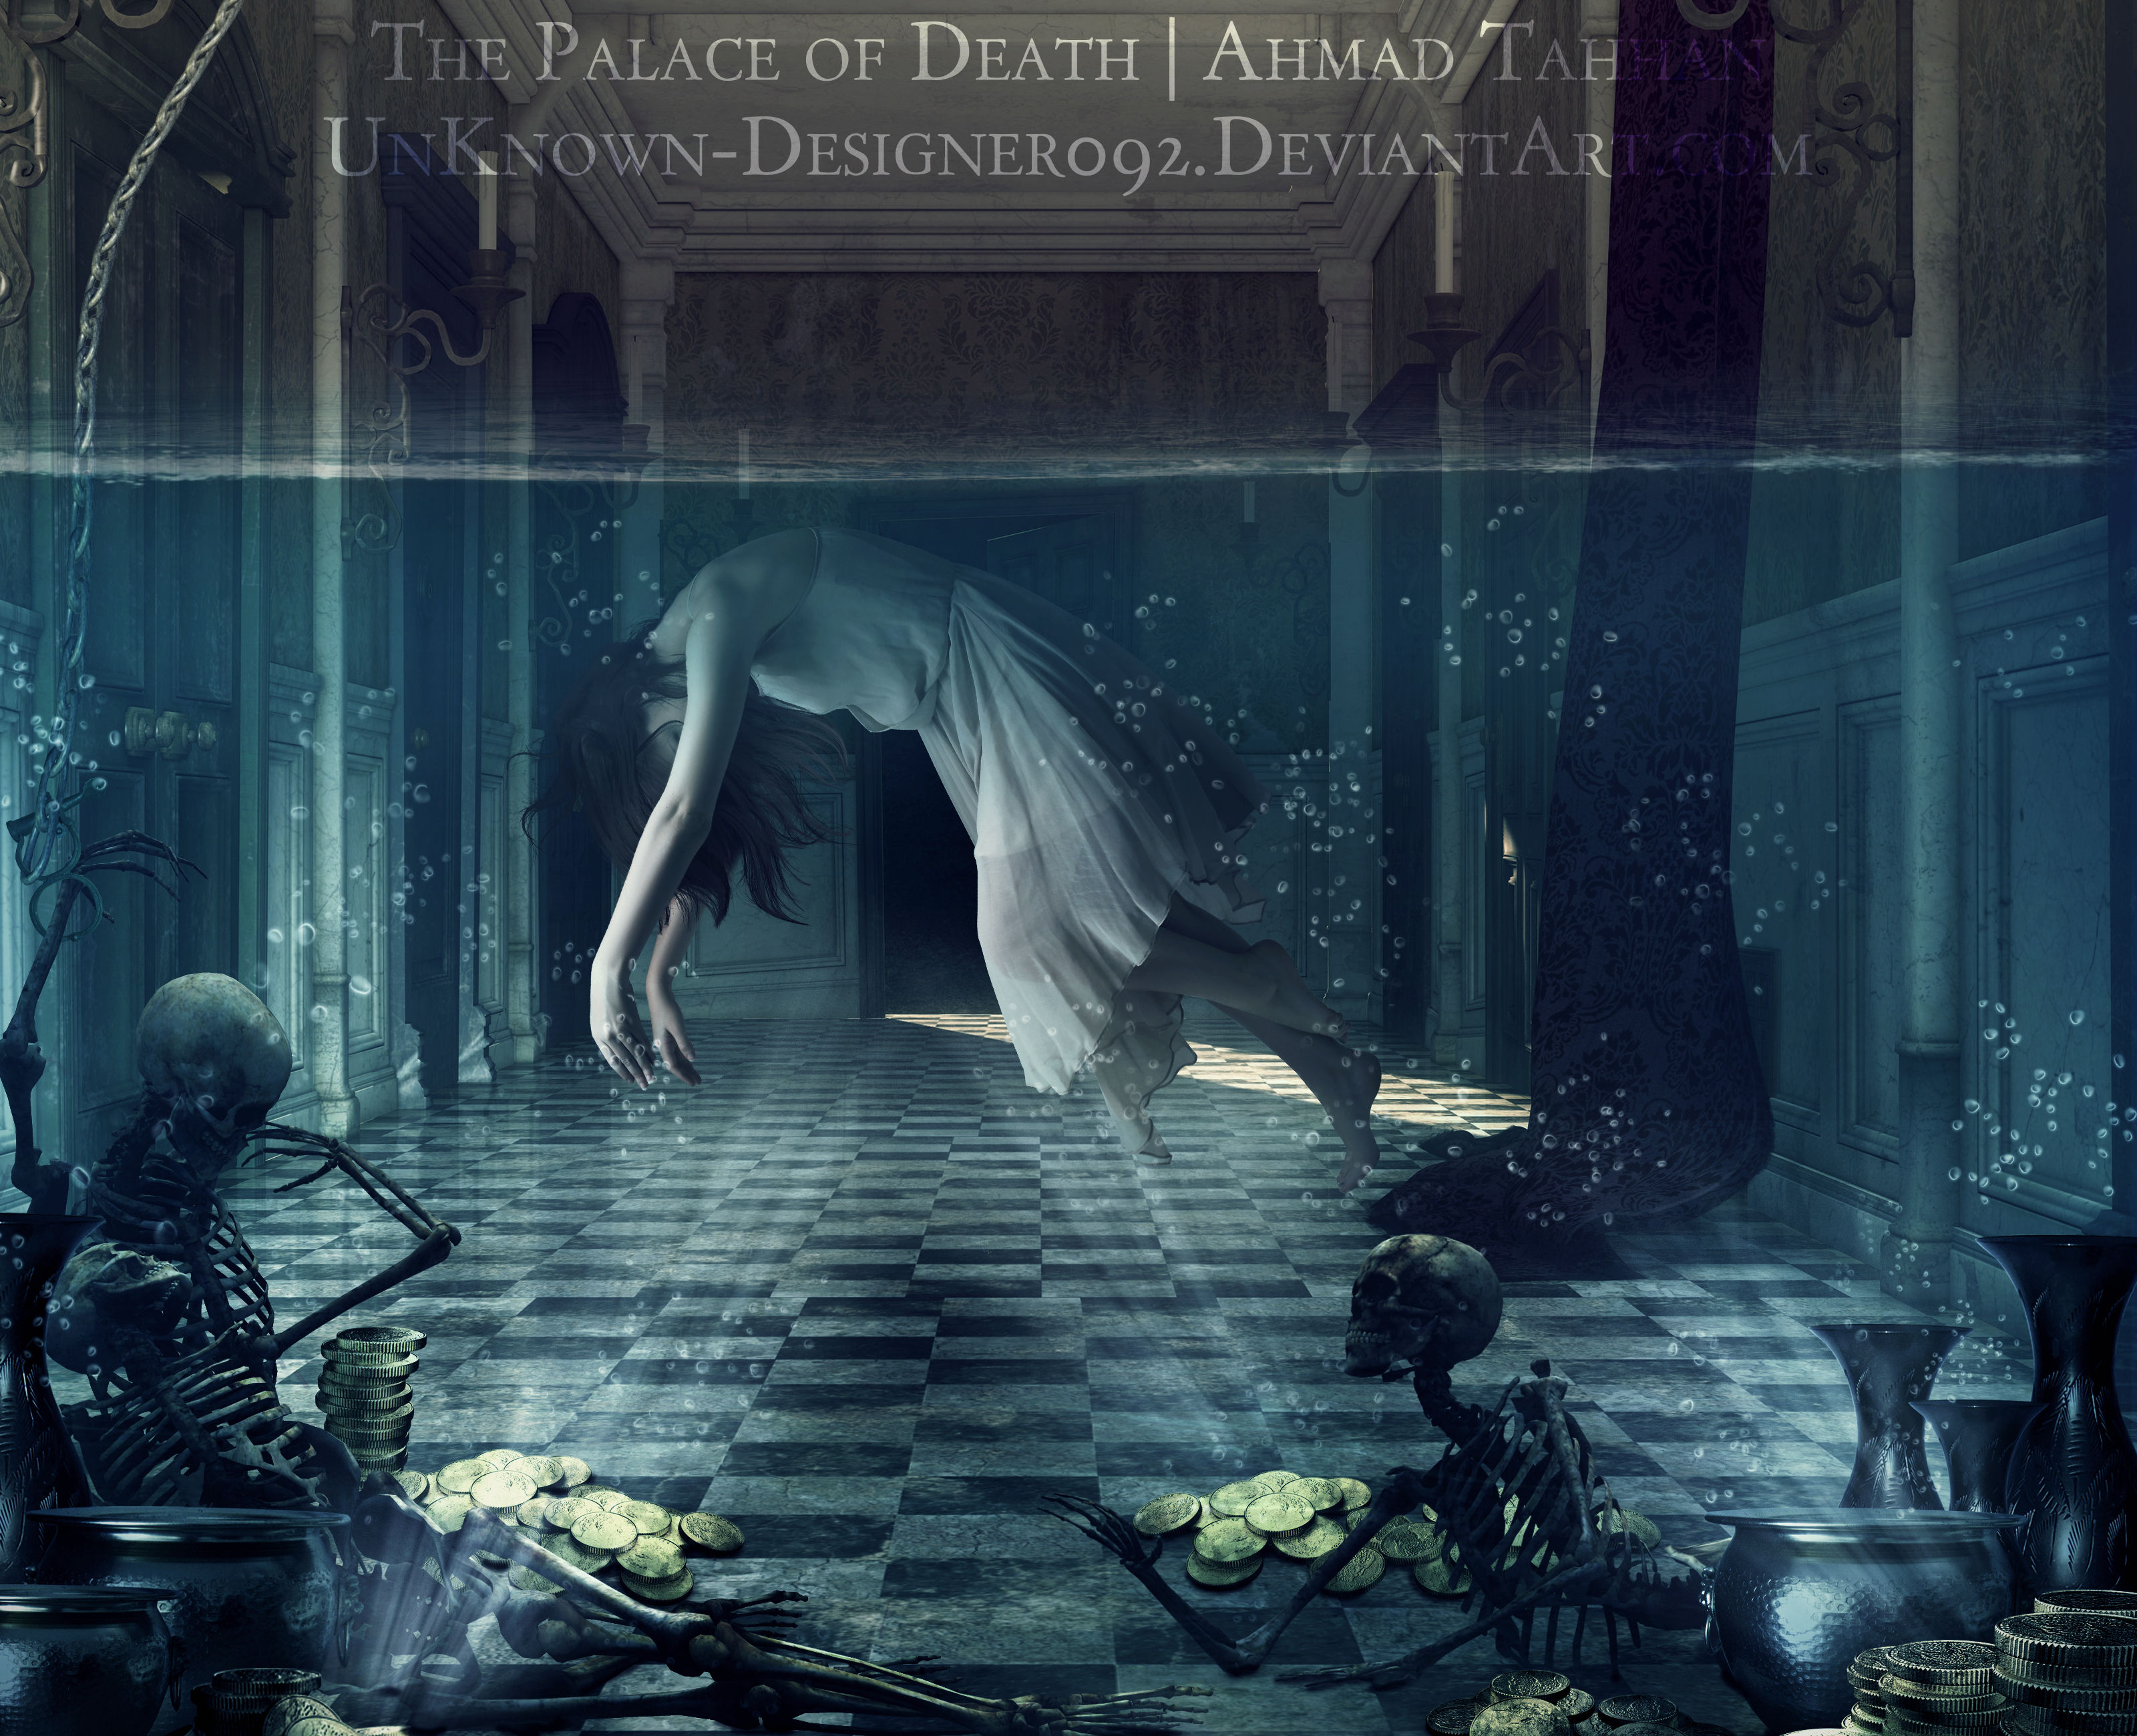 The Palace of Death by Ahmad-Tahhan